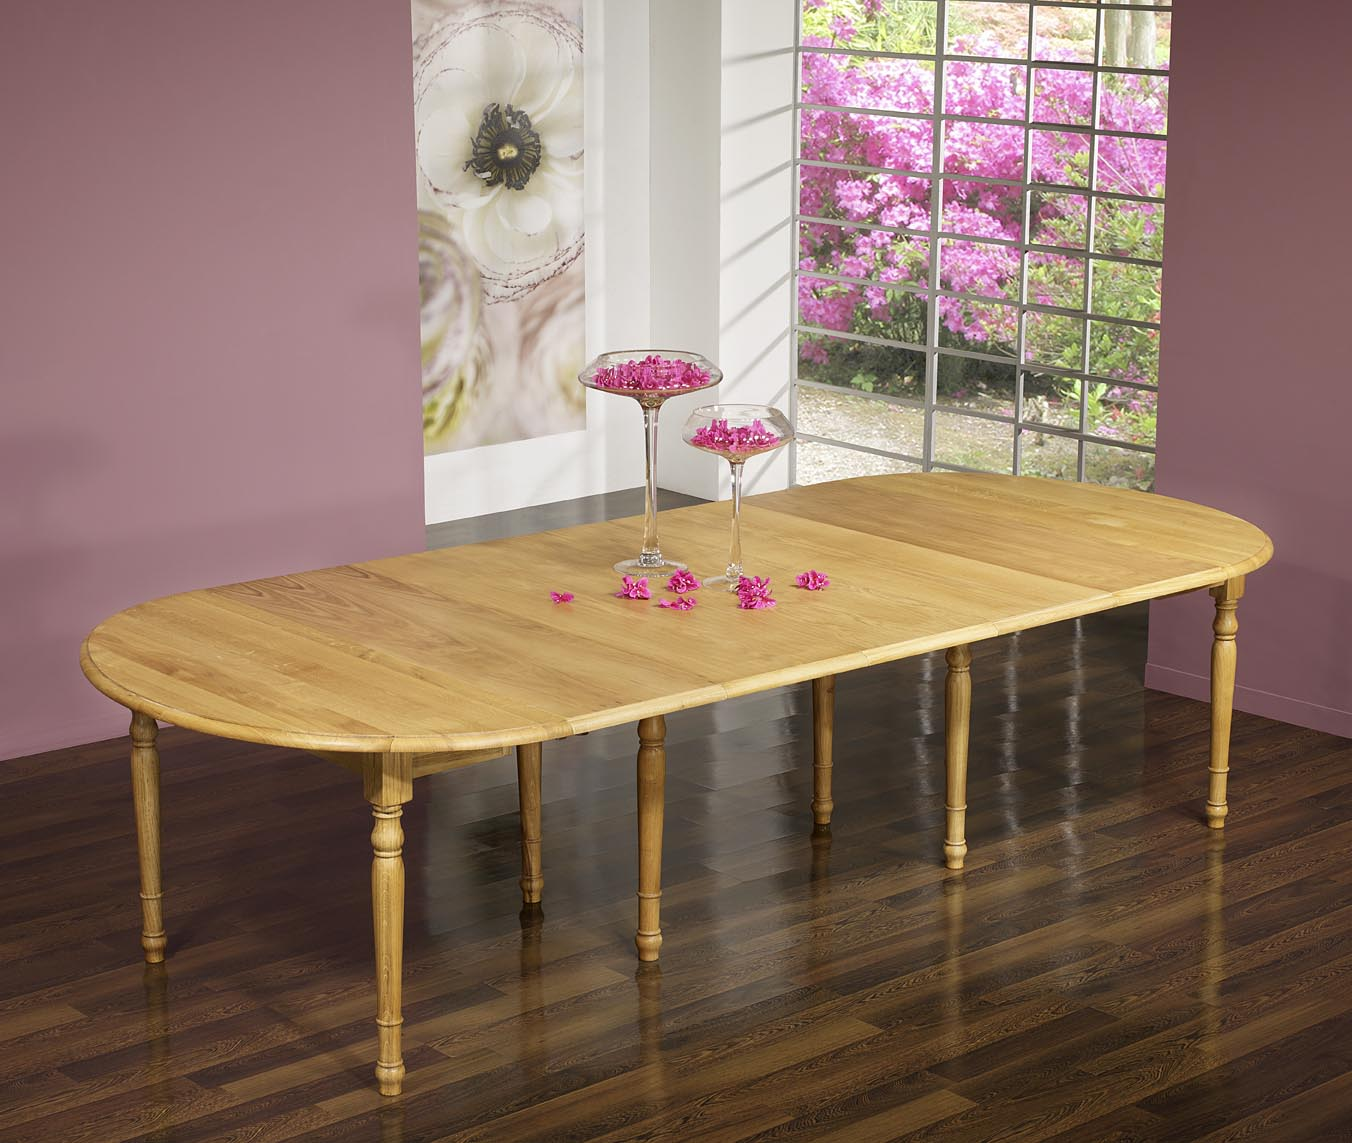 Table ovale volets 135x110 en ch ne massif de style for Table ovale avec allonges